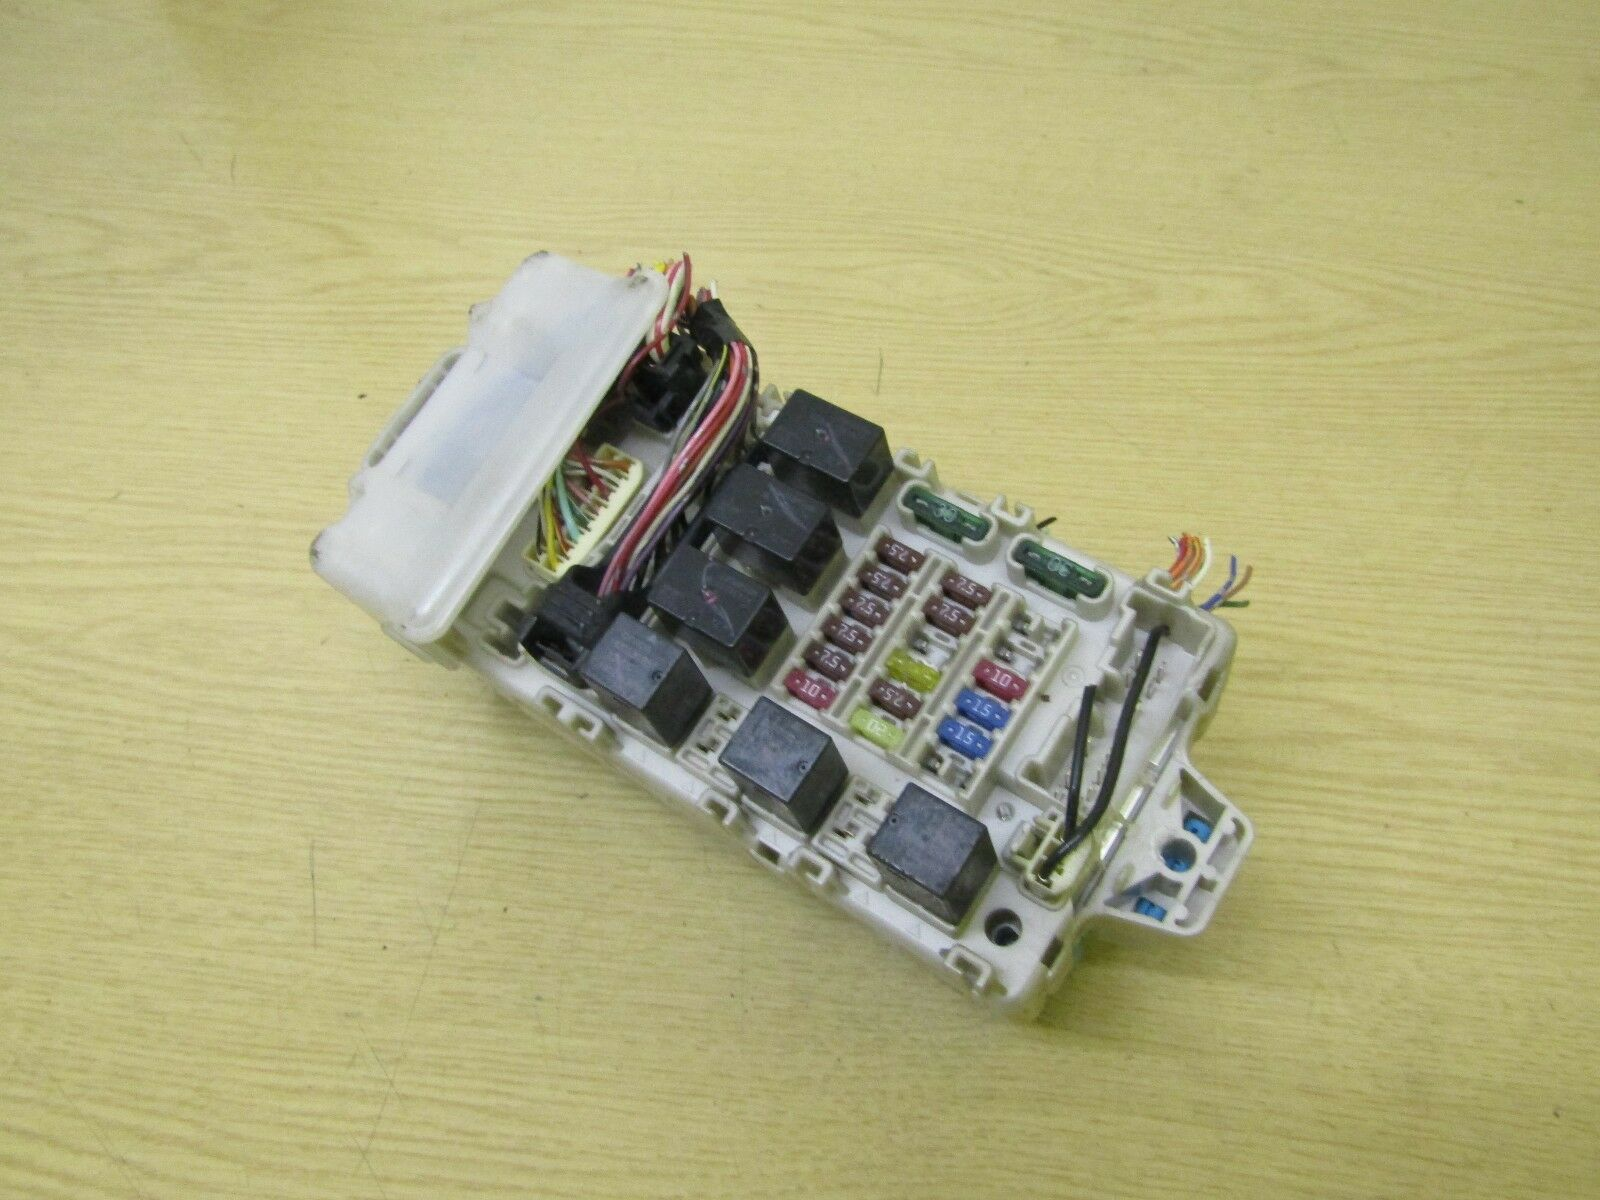 2007 Mitsubishi Lancer Fuse Box 8637A331 1 of 4Only 1 available ...